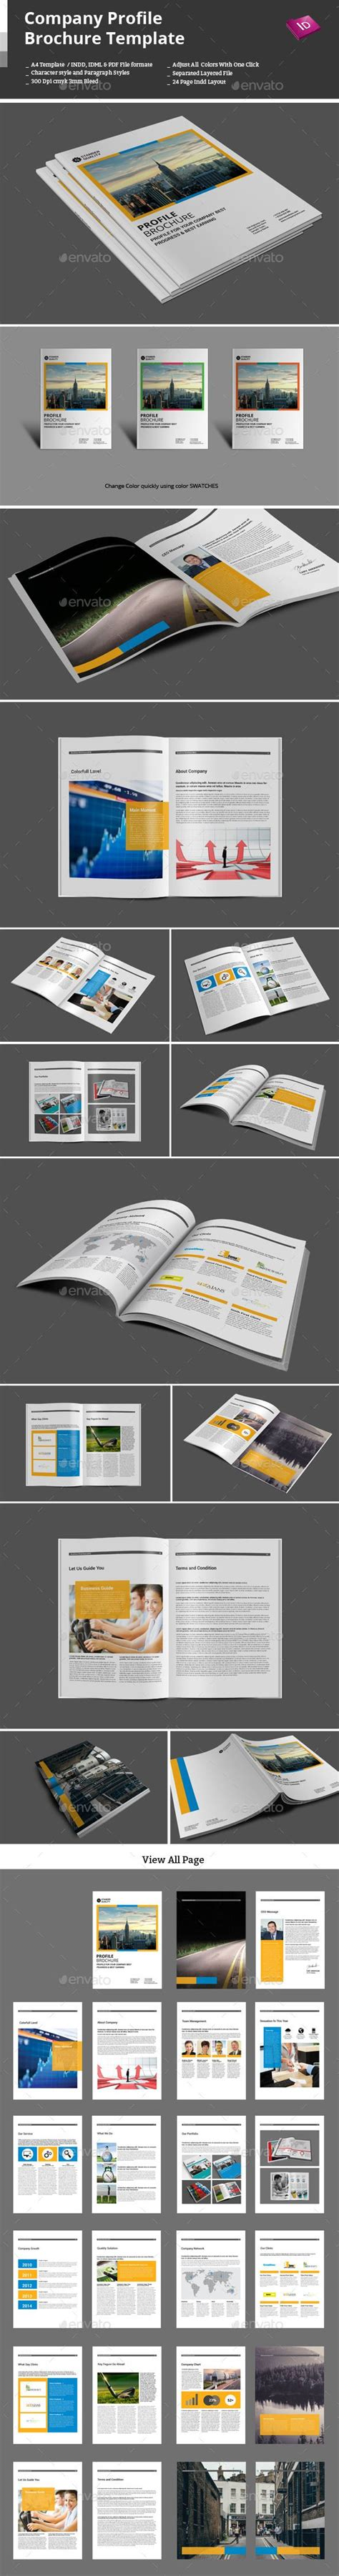 1000 images about profile design on pinterest sumo